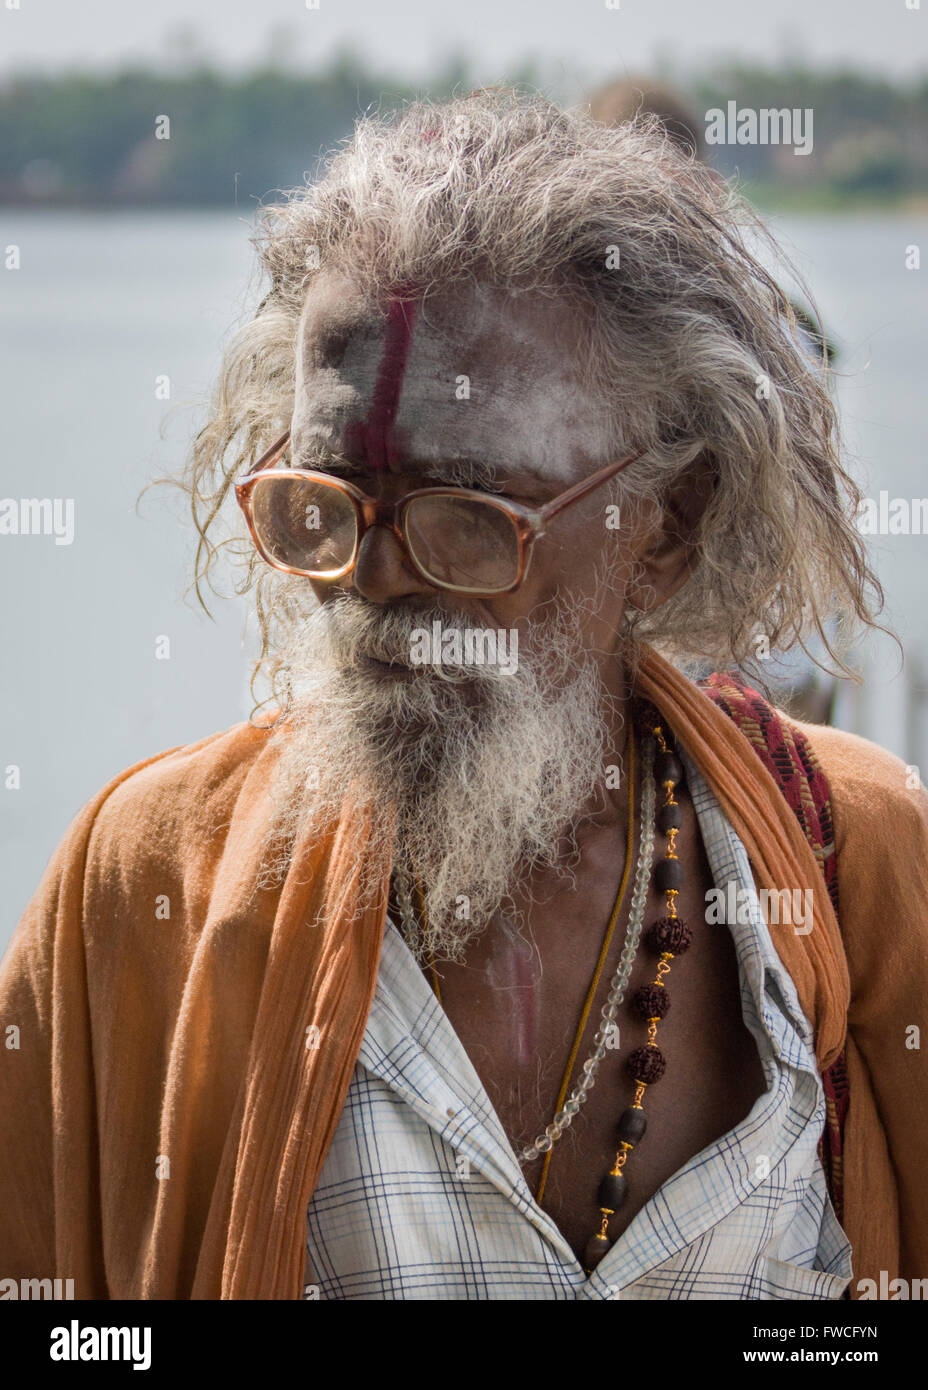 Trichy, India - October 15, 2013: Old, graying sadhu with beard and glasses. Wears orange garb. - Stock Image